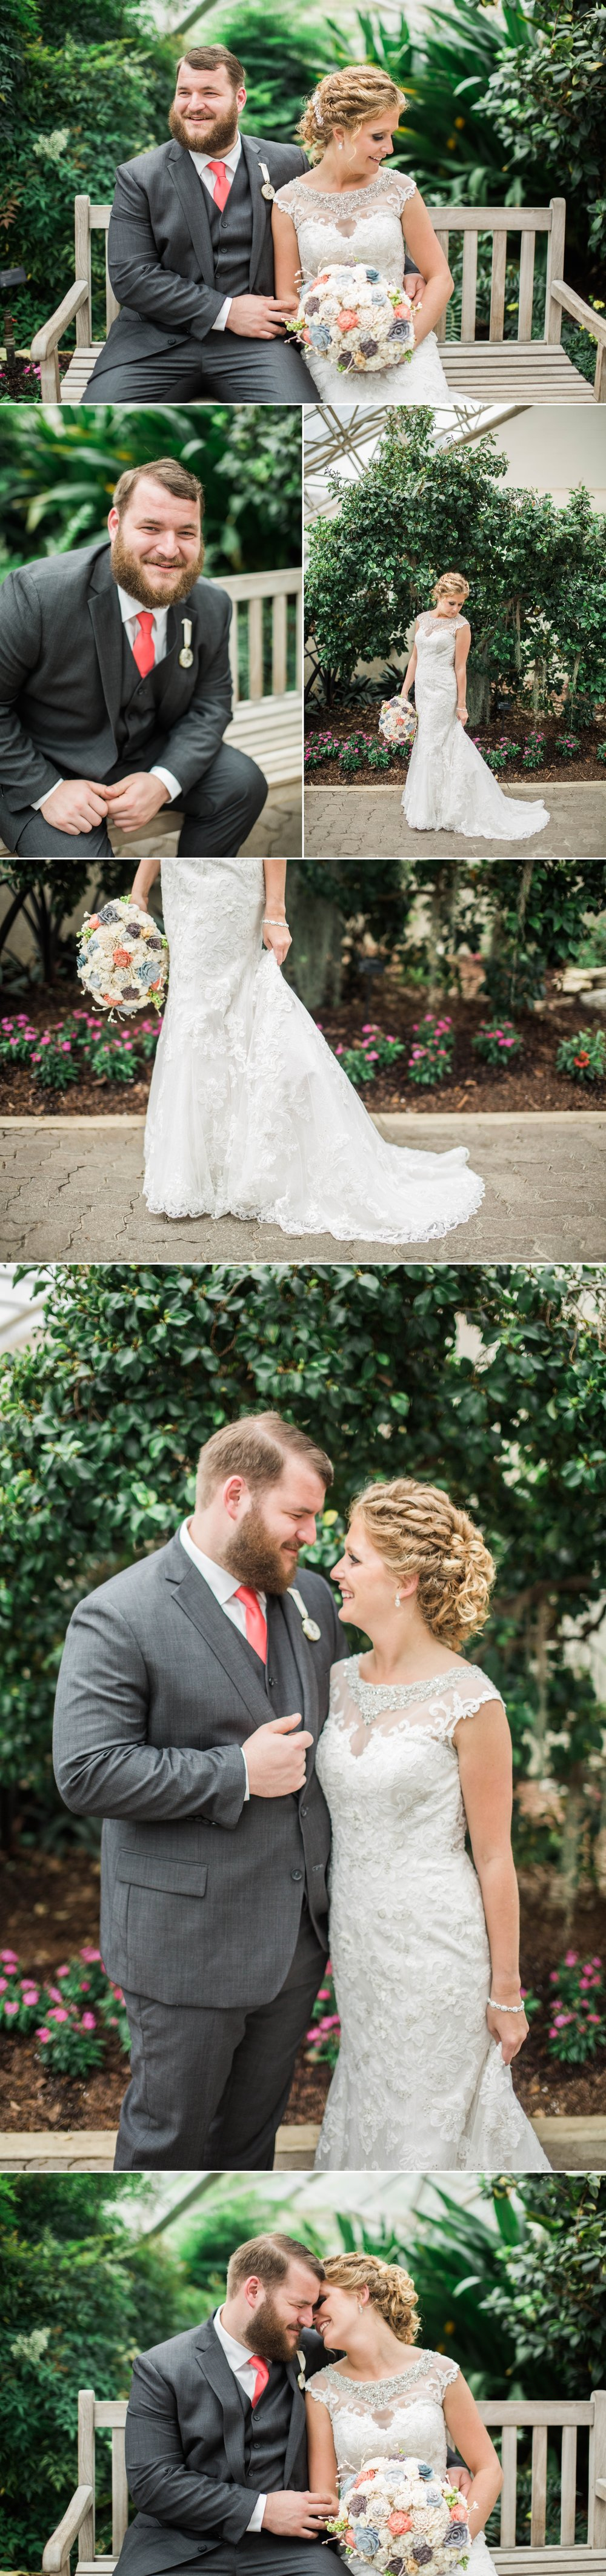 bride - groom - wedding day - botanical gardens